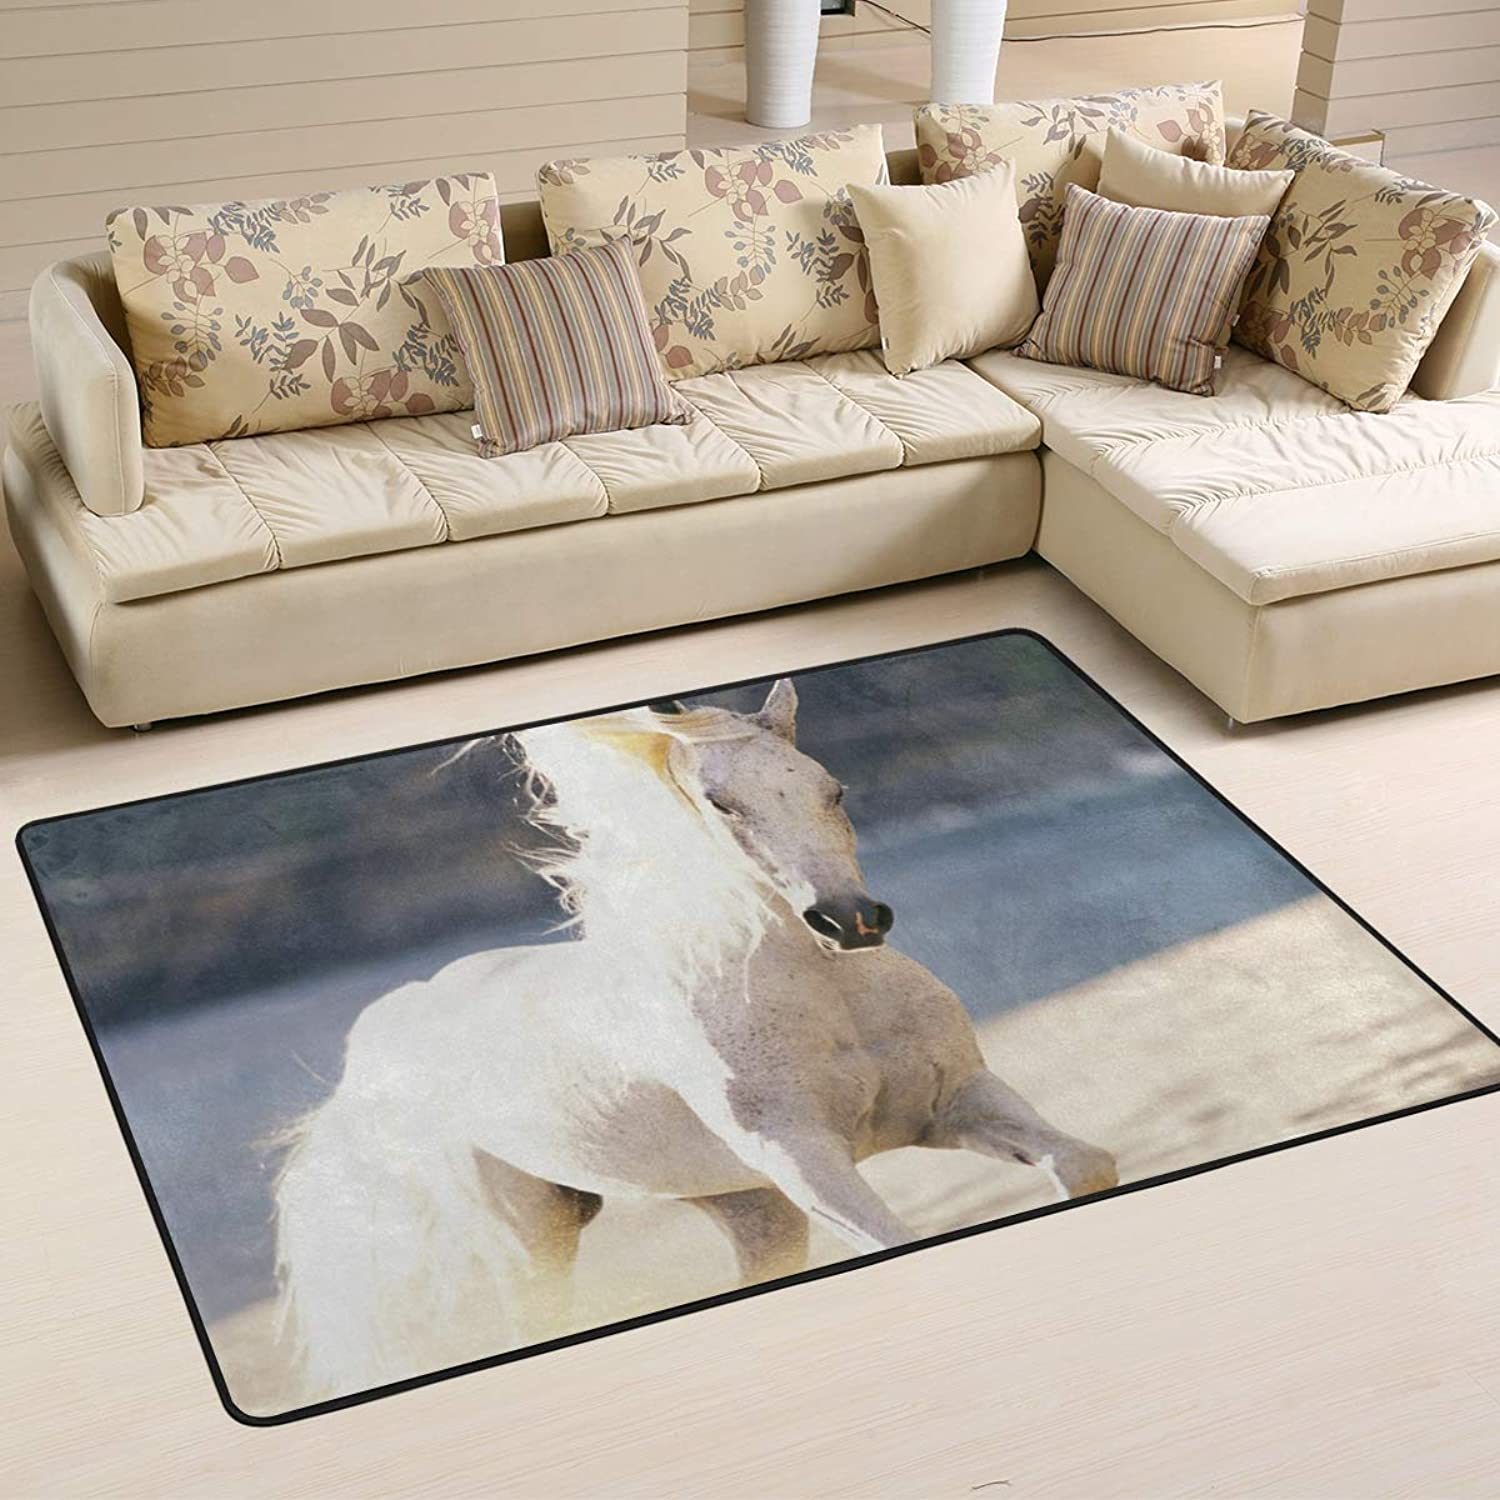 Area Rugs Doormats White Horse Soft Carpet Mat 6'x4' (72x48 Inches) for Living Dining Dorm Room Bedroom Home Decorative